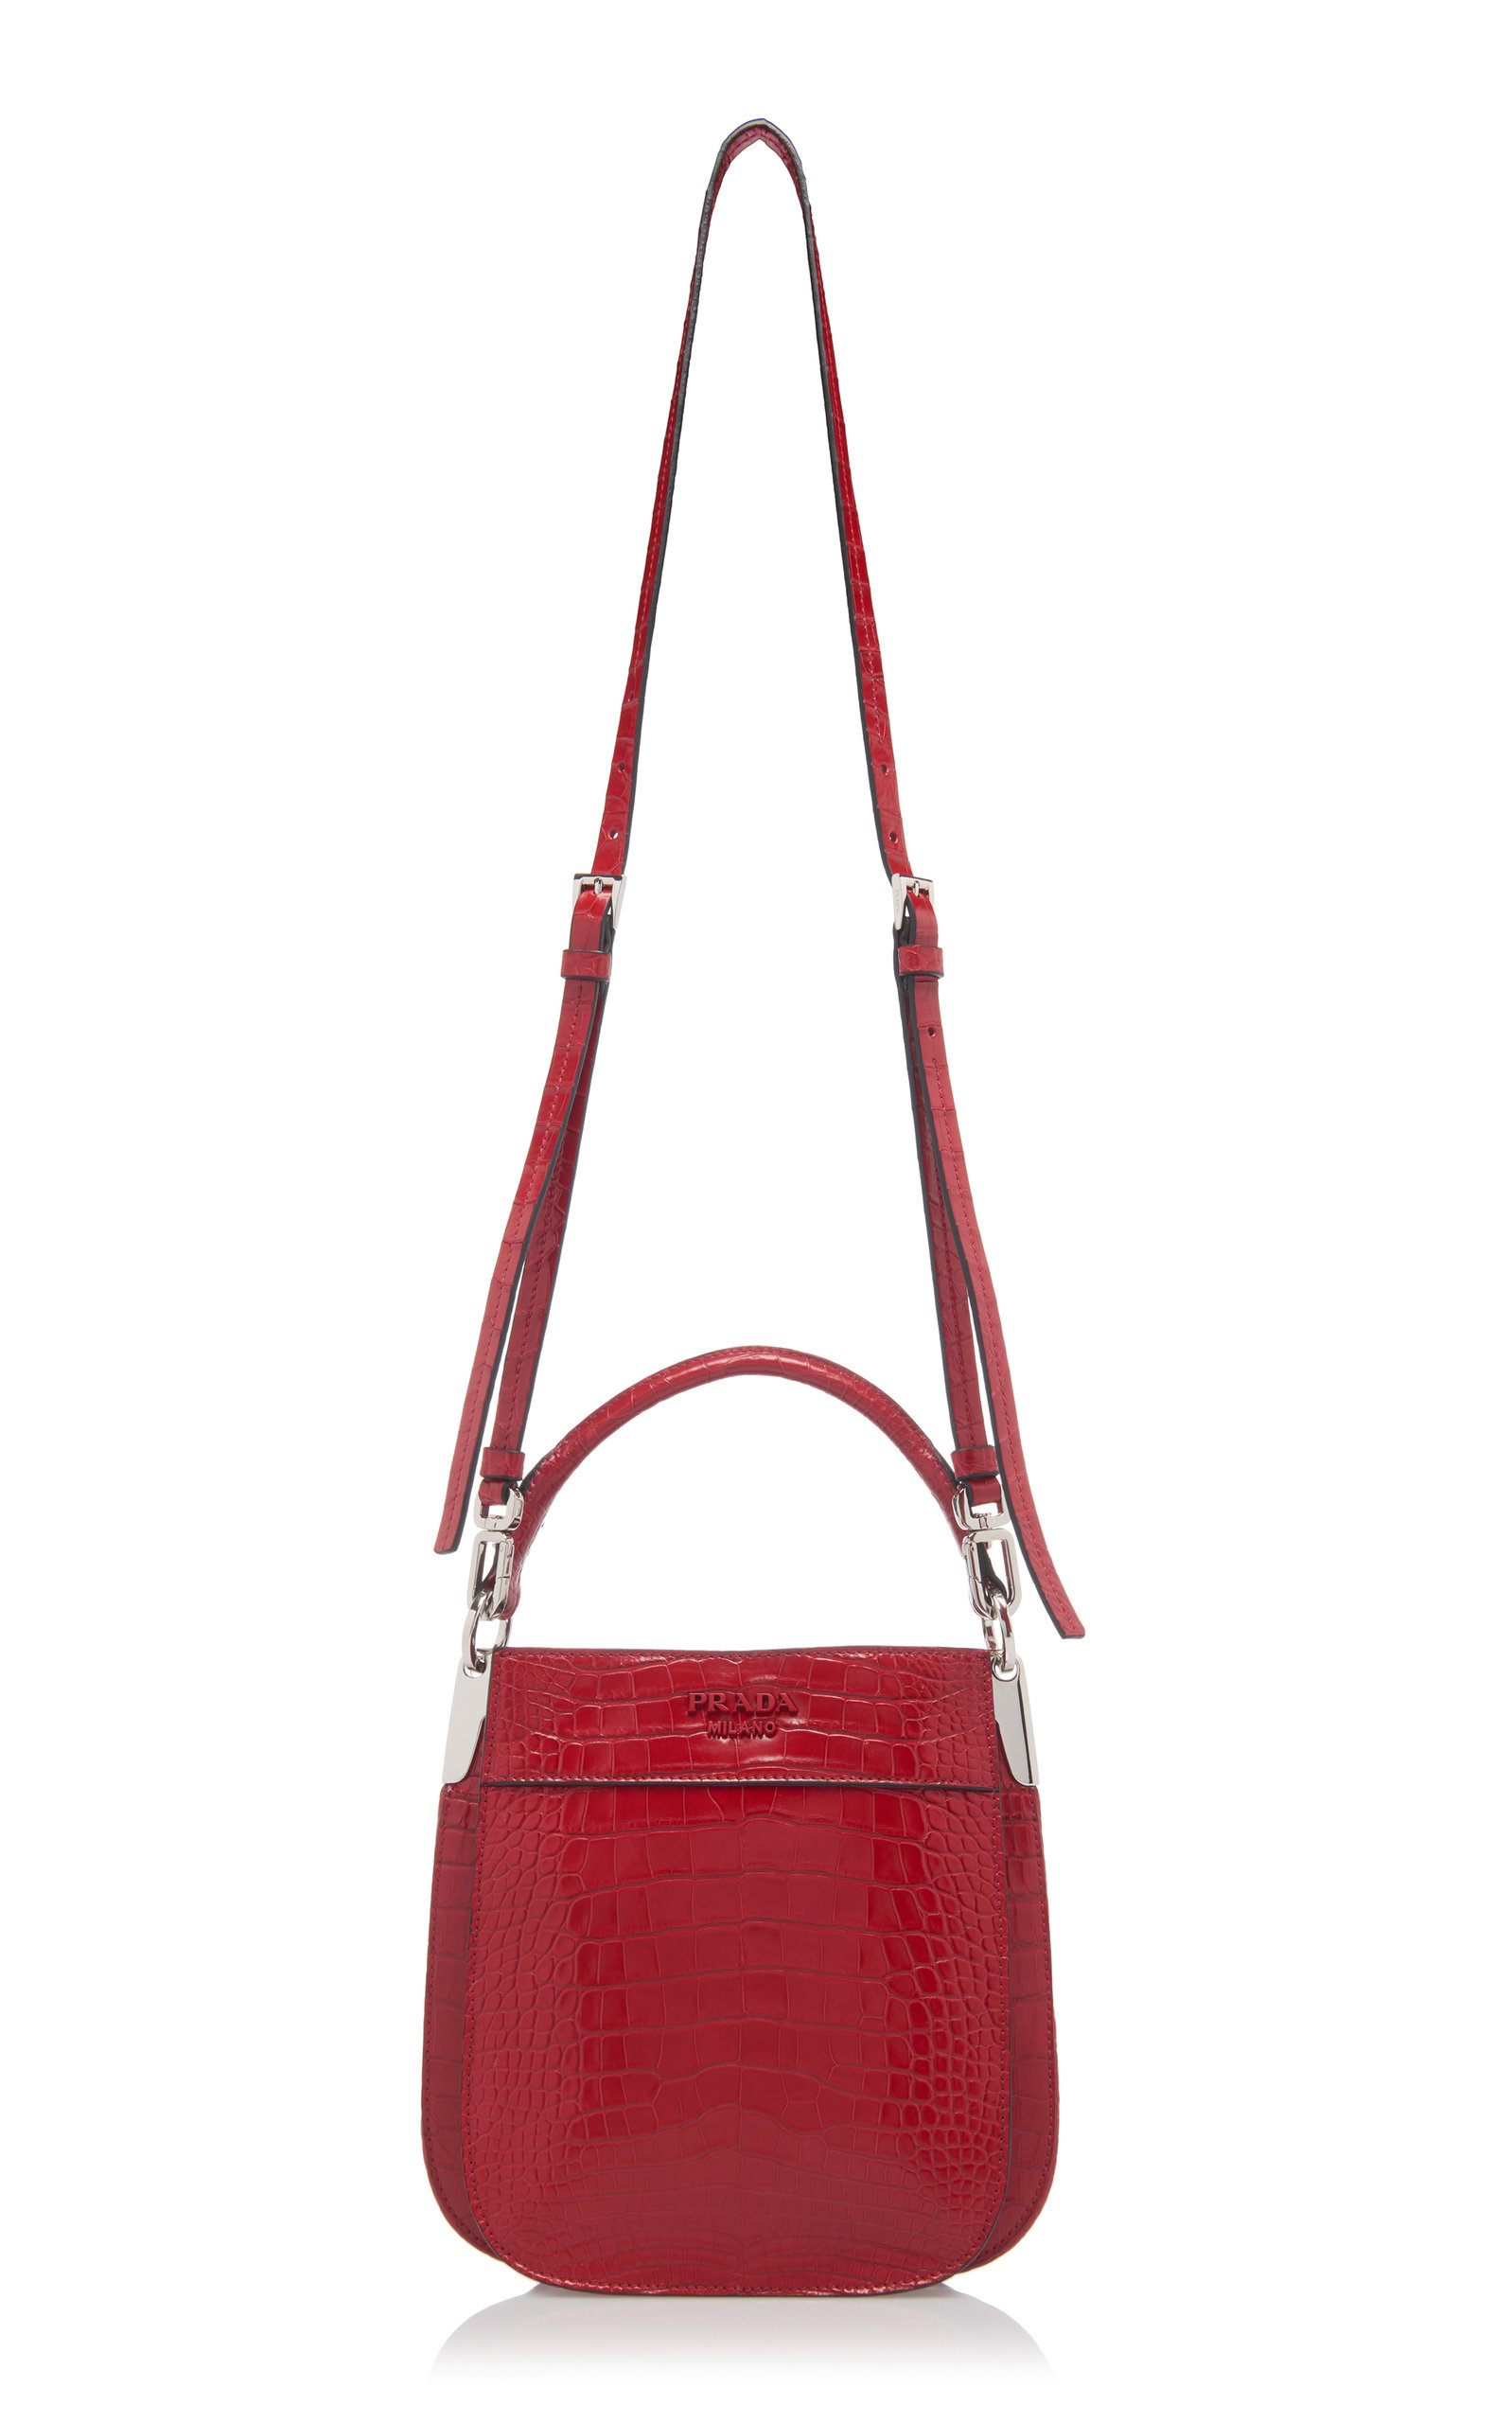 Crocodile Bucket Bag Prada kCbwFym